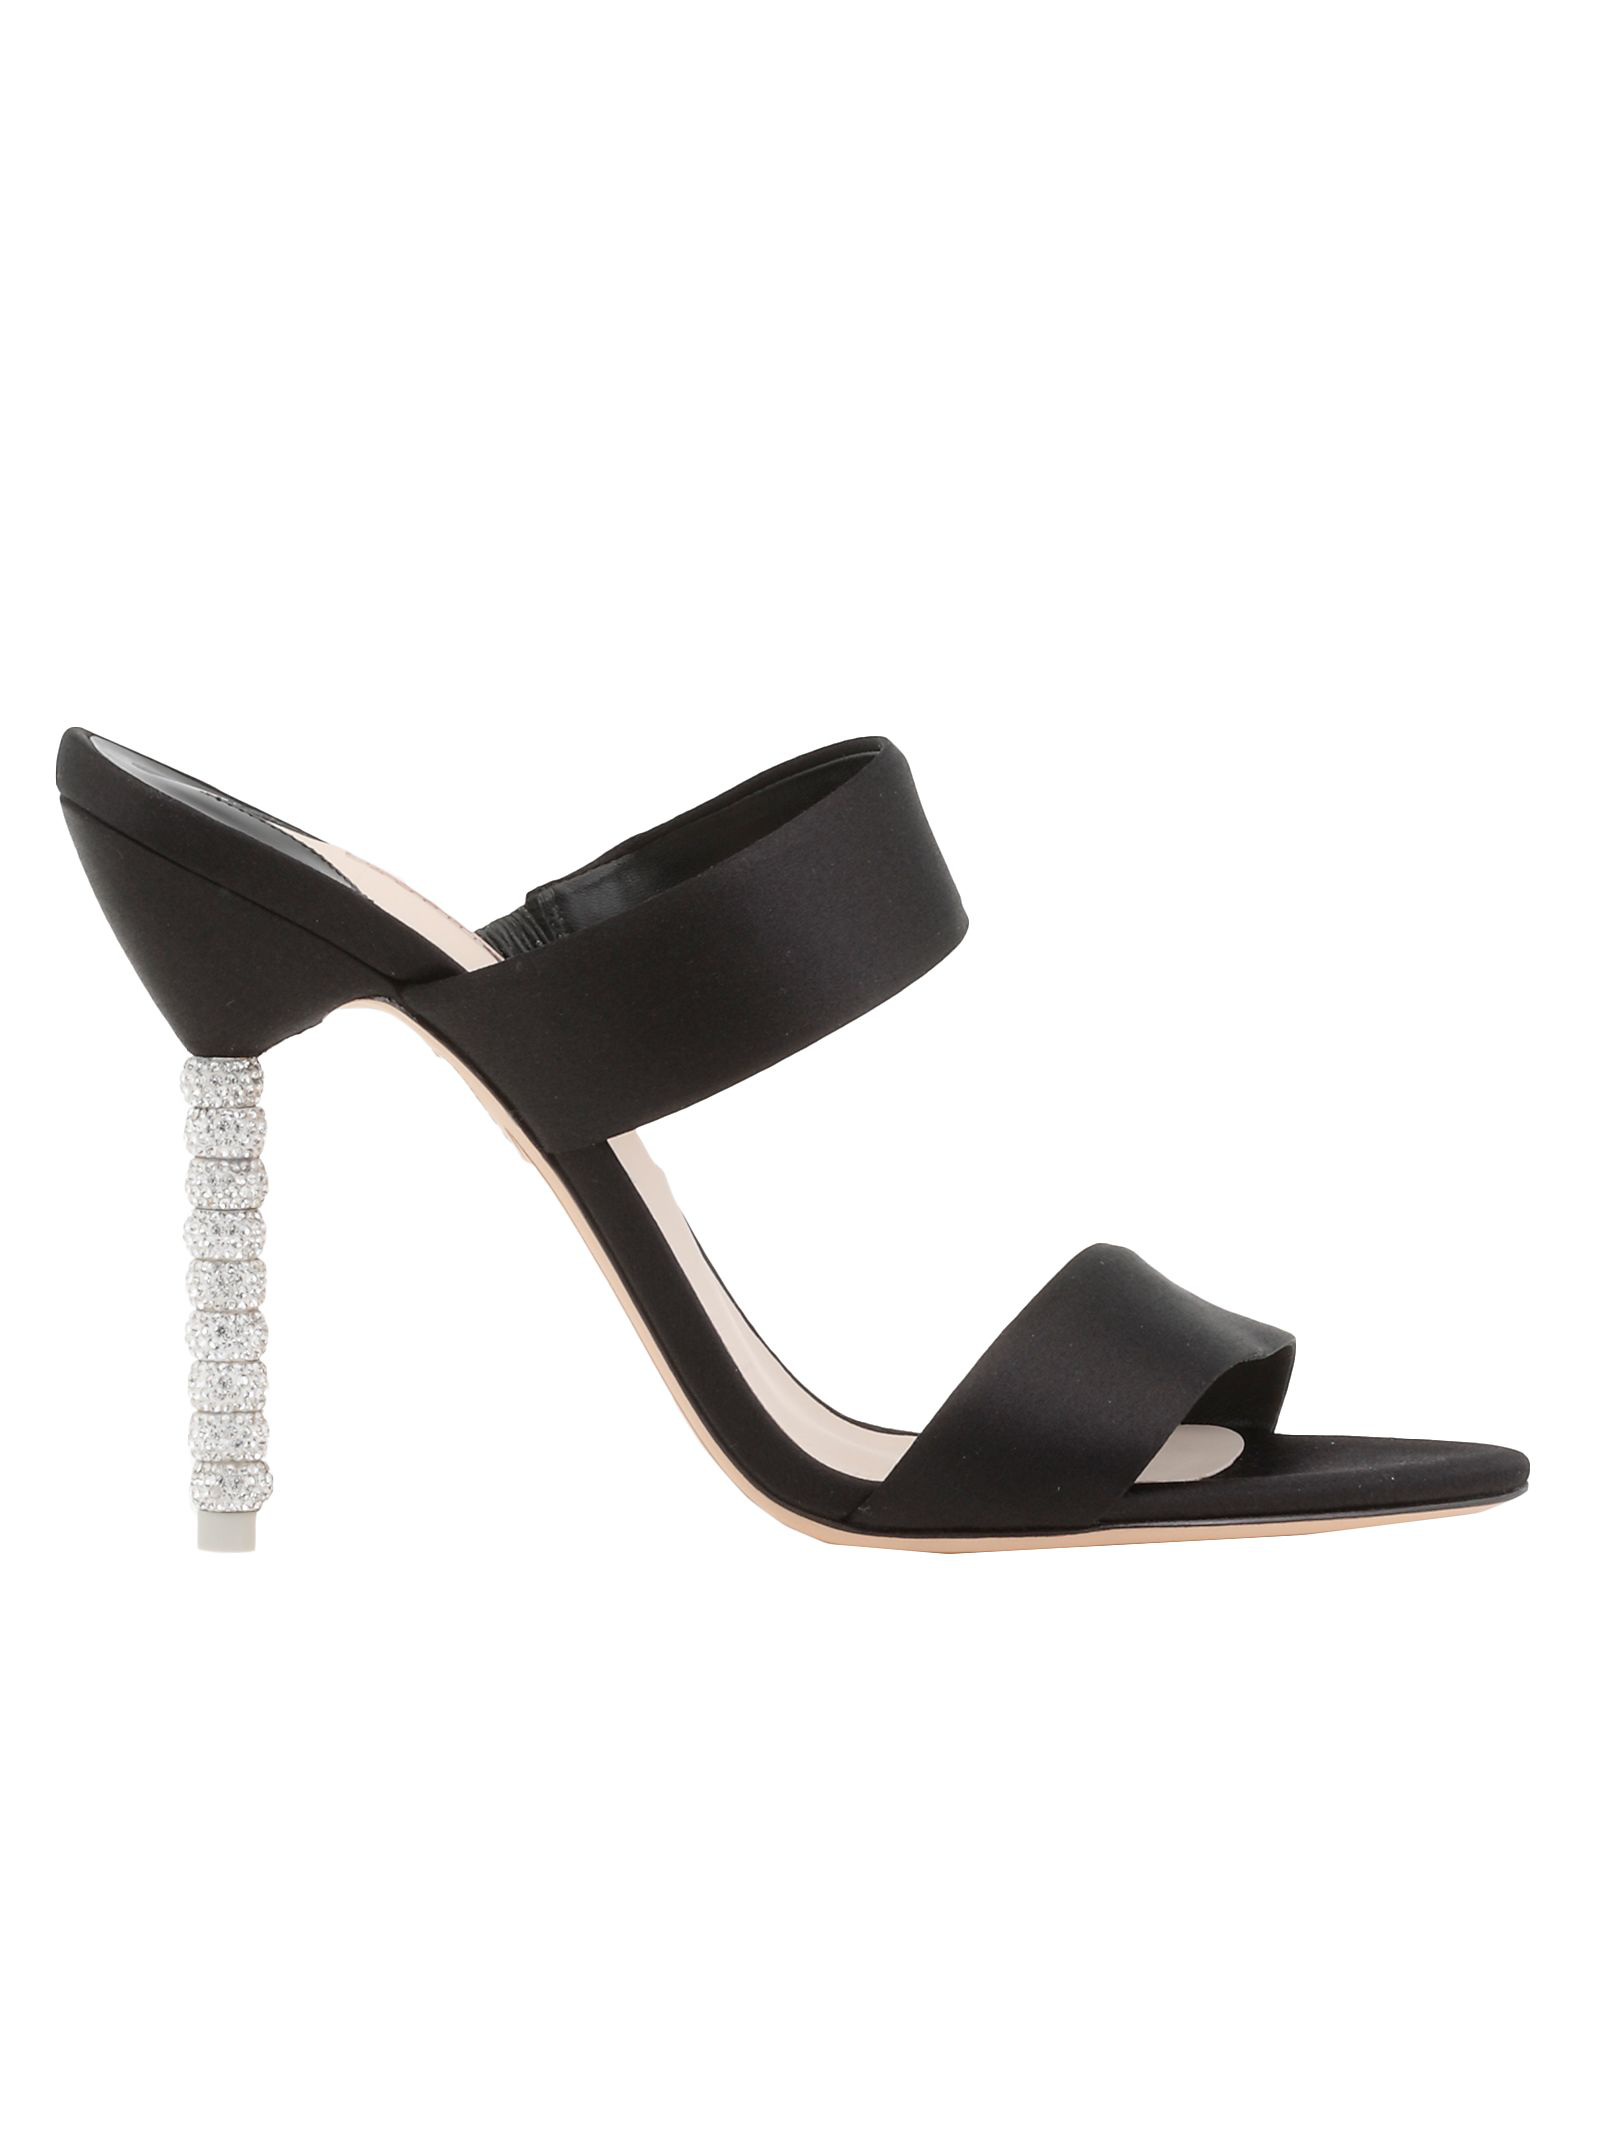 Sophia Webster Rosalind Crystal Sandal In Black